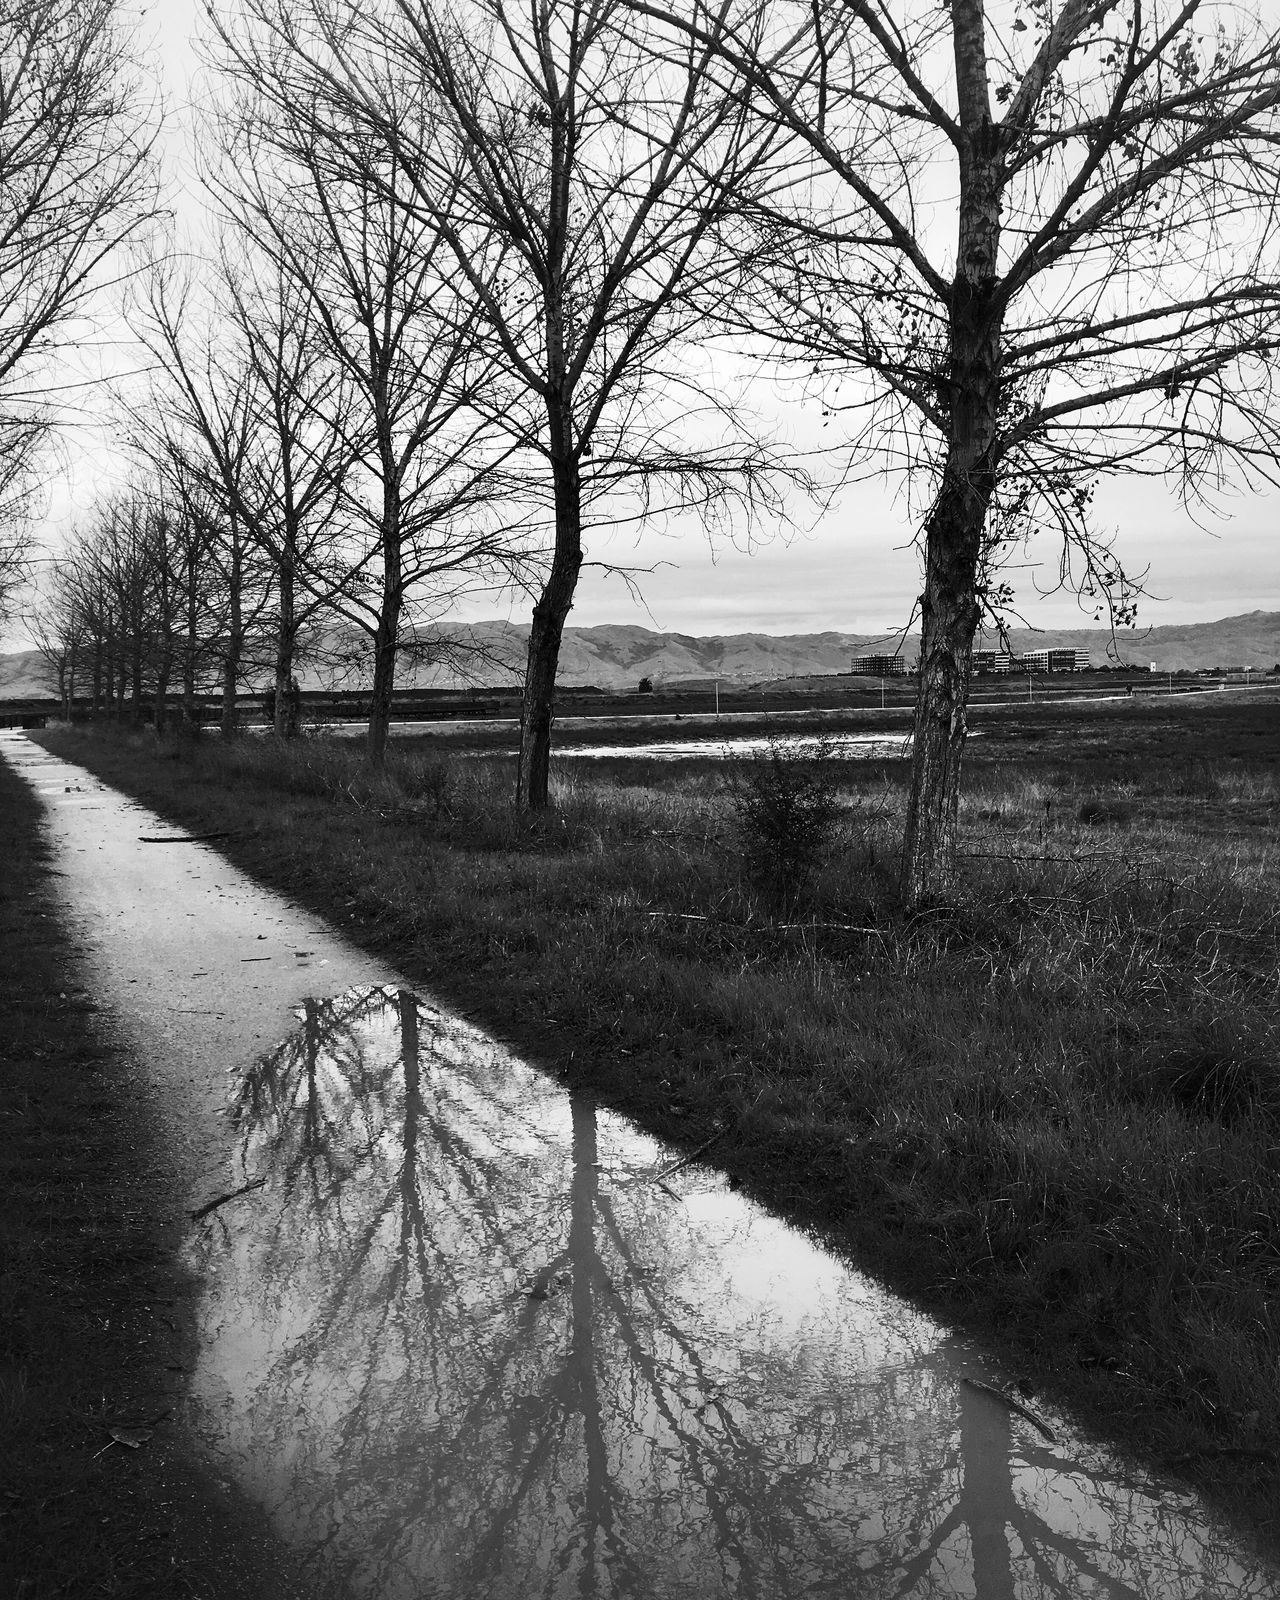 Baylands Tree Nature Bare Tree Tranquility Beauty In Nature Outdoors Landscape Bw_collection Shootermag Blackandwhite California Nature_collection Reflection Fine Art Photography Puddle Baylands Park Sunnyvale